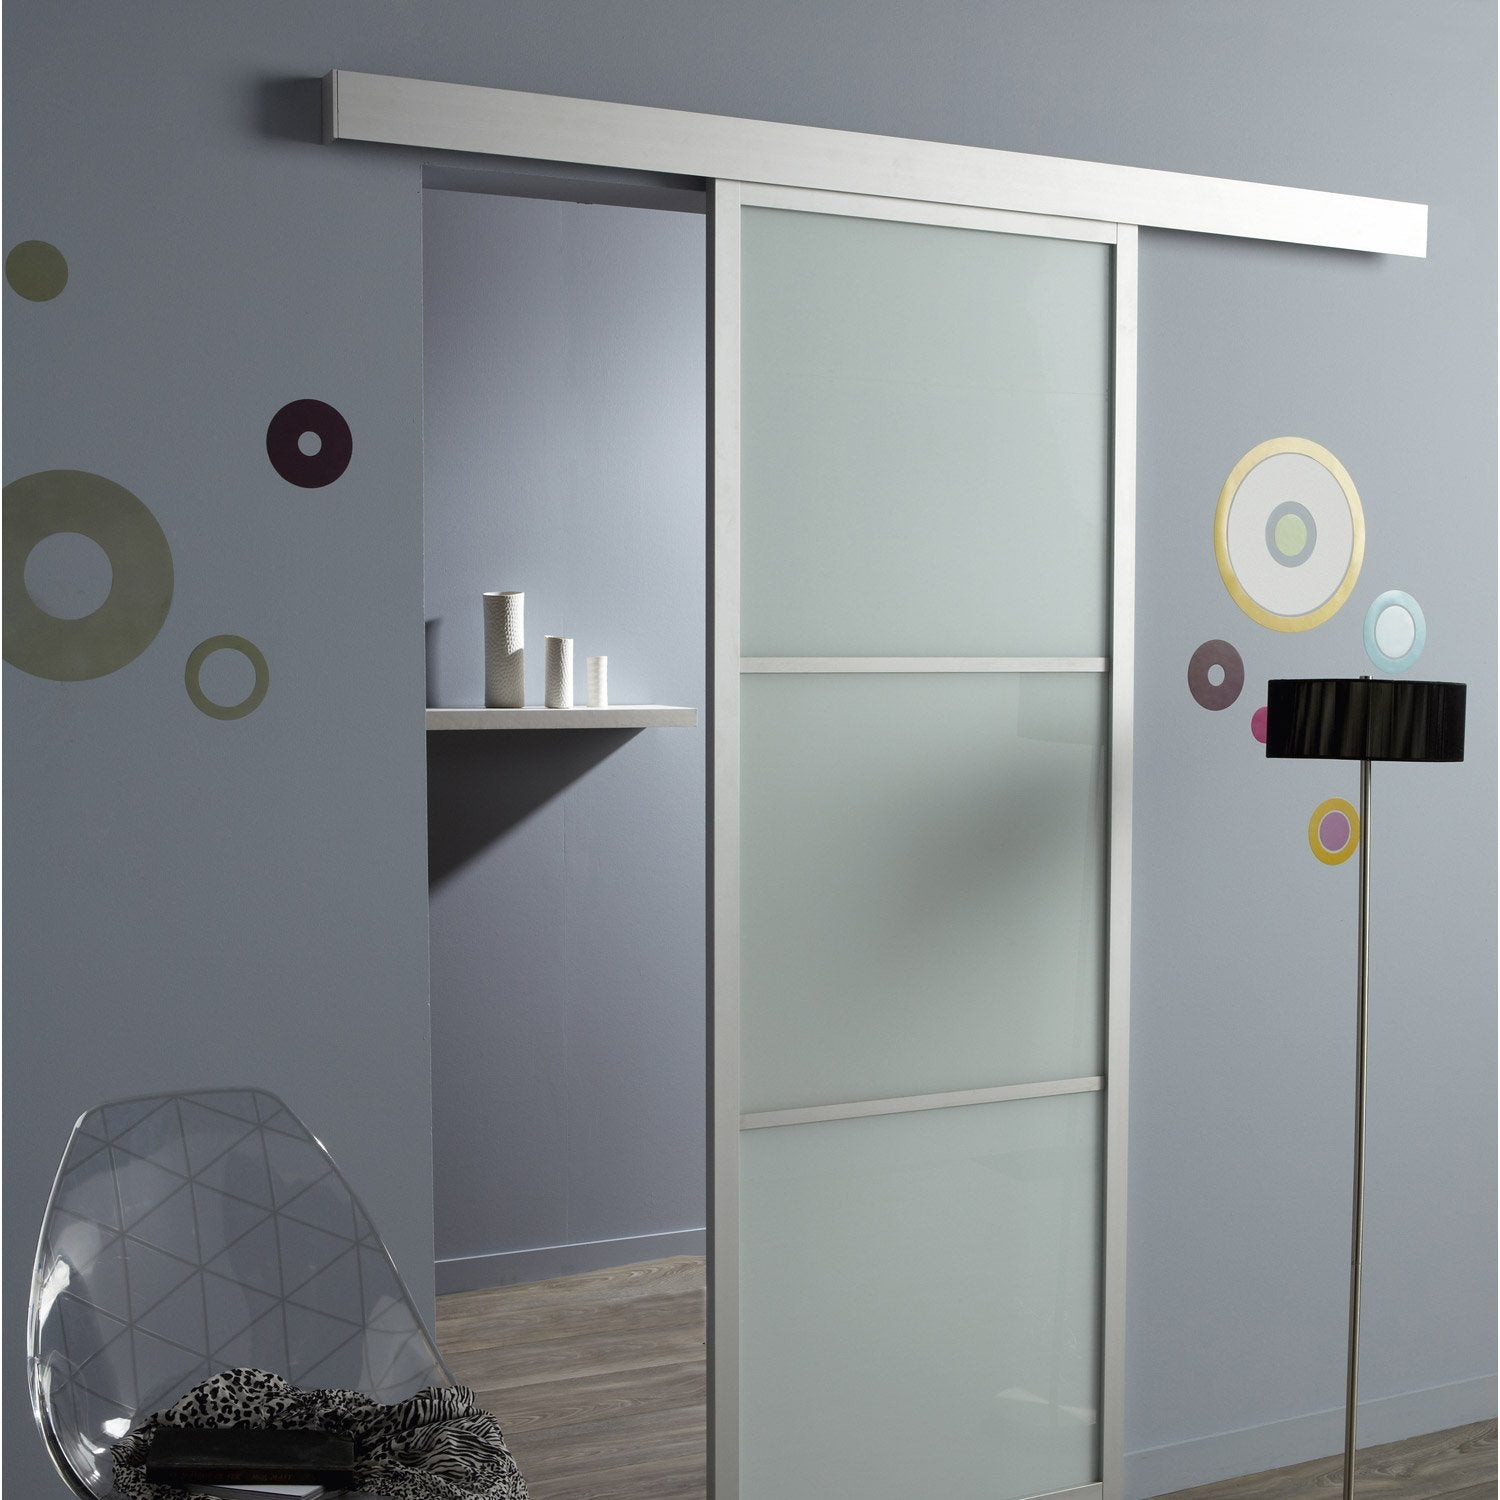 Rail coulissant habillage swing 2 cache aluminium artens for Porte coulissante miroir largeur 90